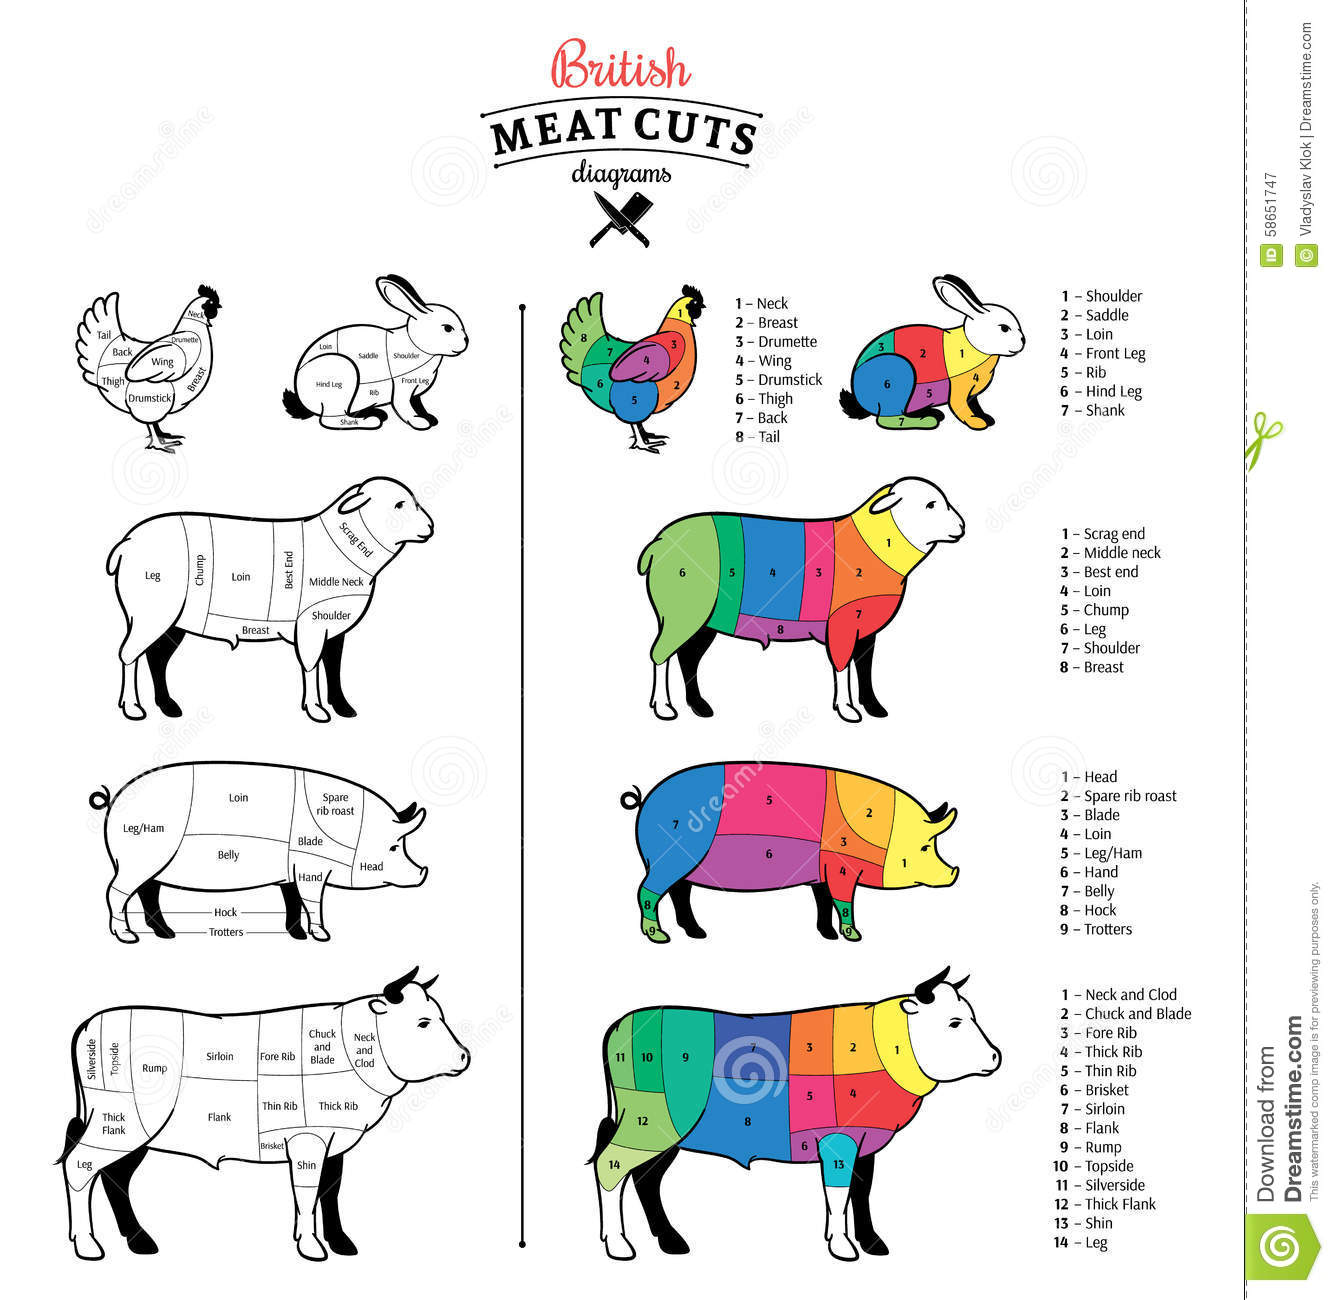 Meat Cuts Diagram Label Guide And Troubleshooting Of Wiring Pig Cut British Diagrams Stock Vector Image 58651747 Best Beef Chart